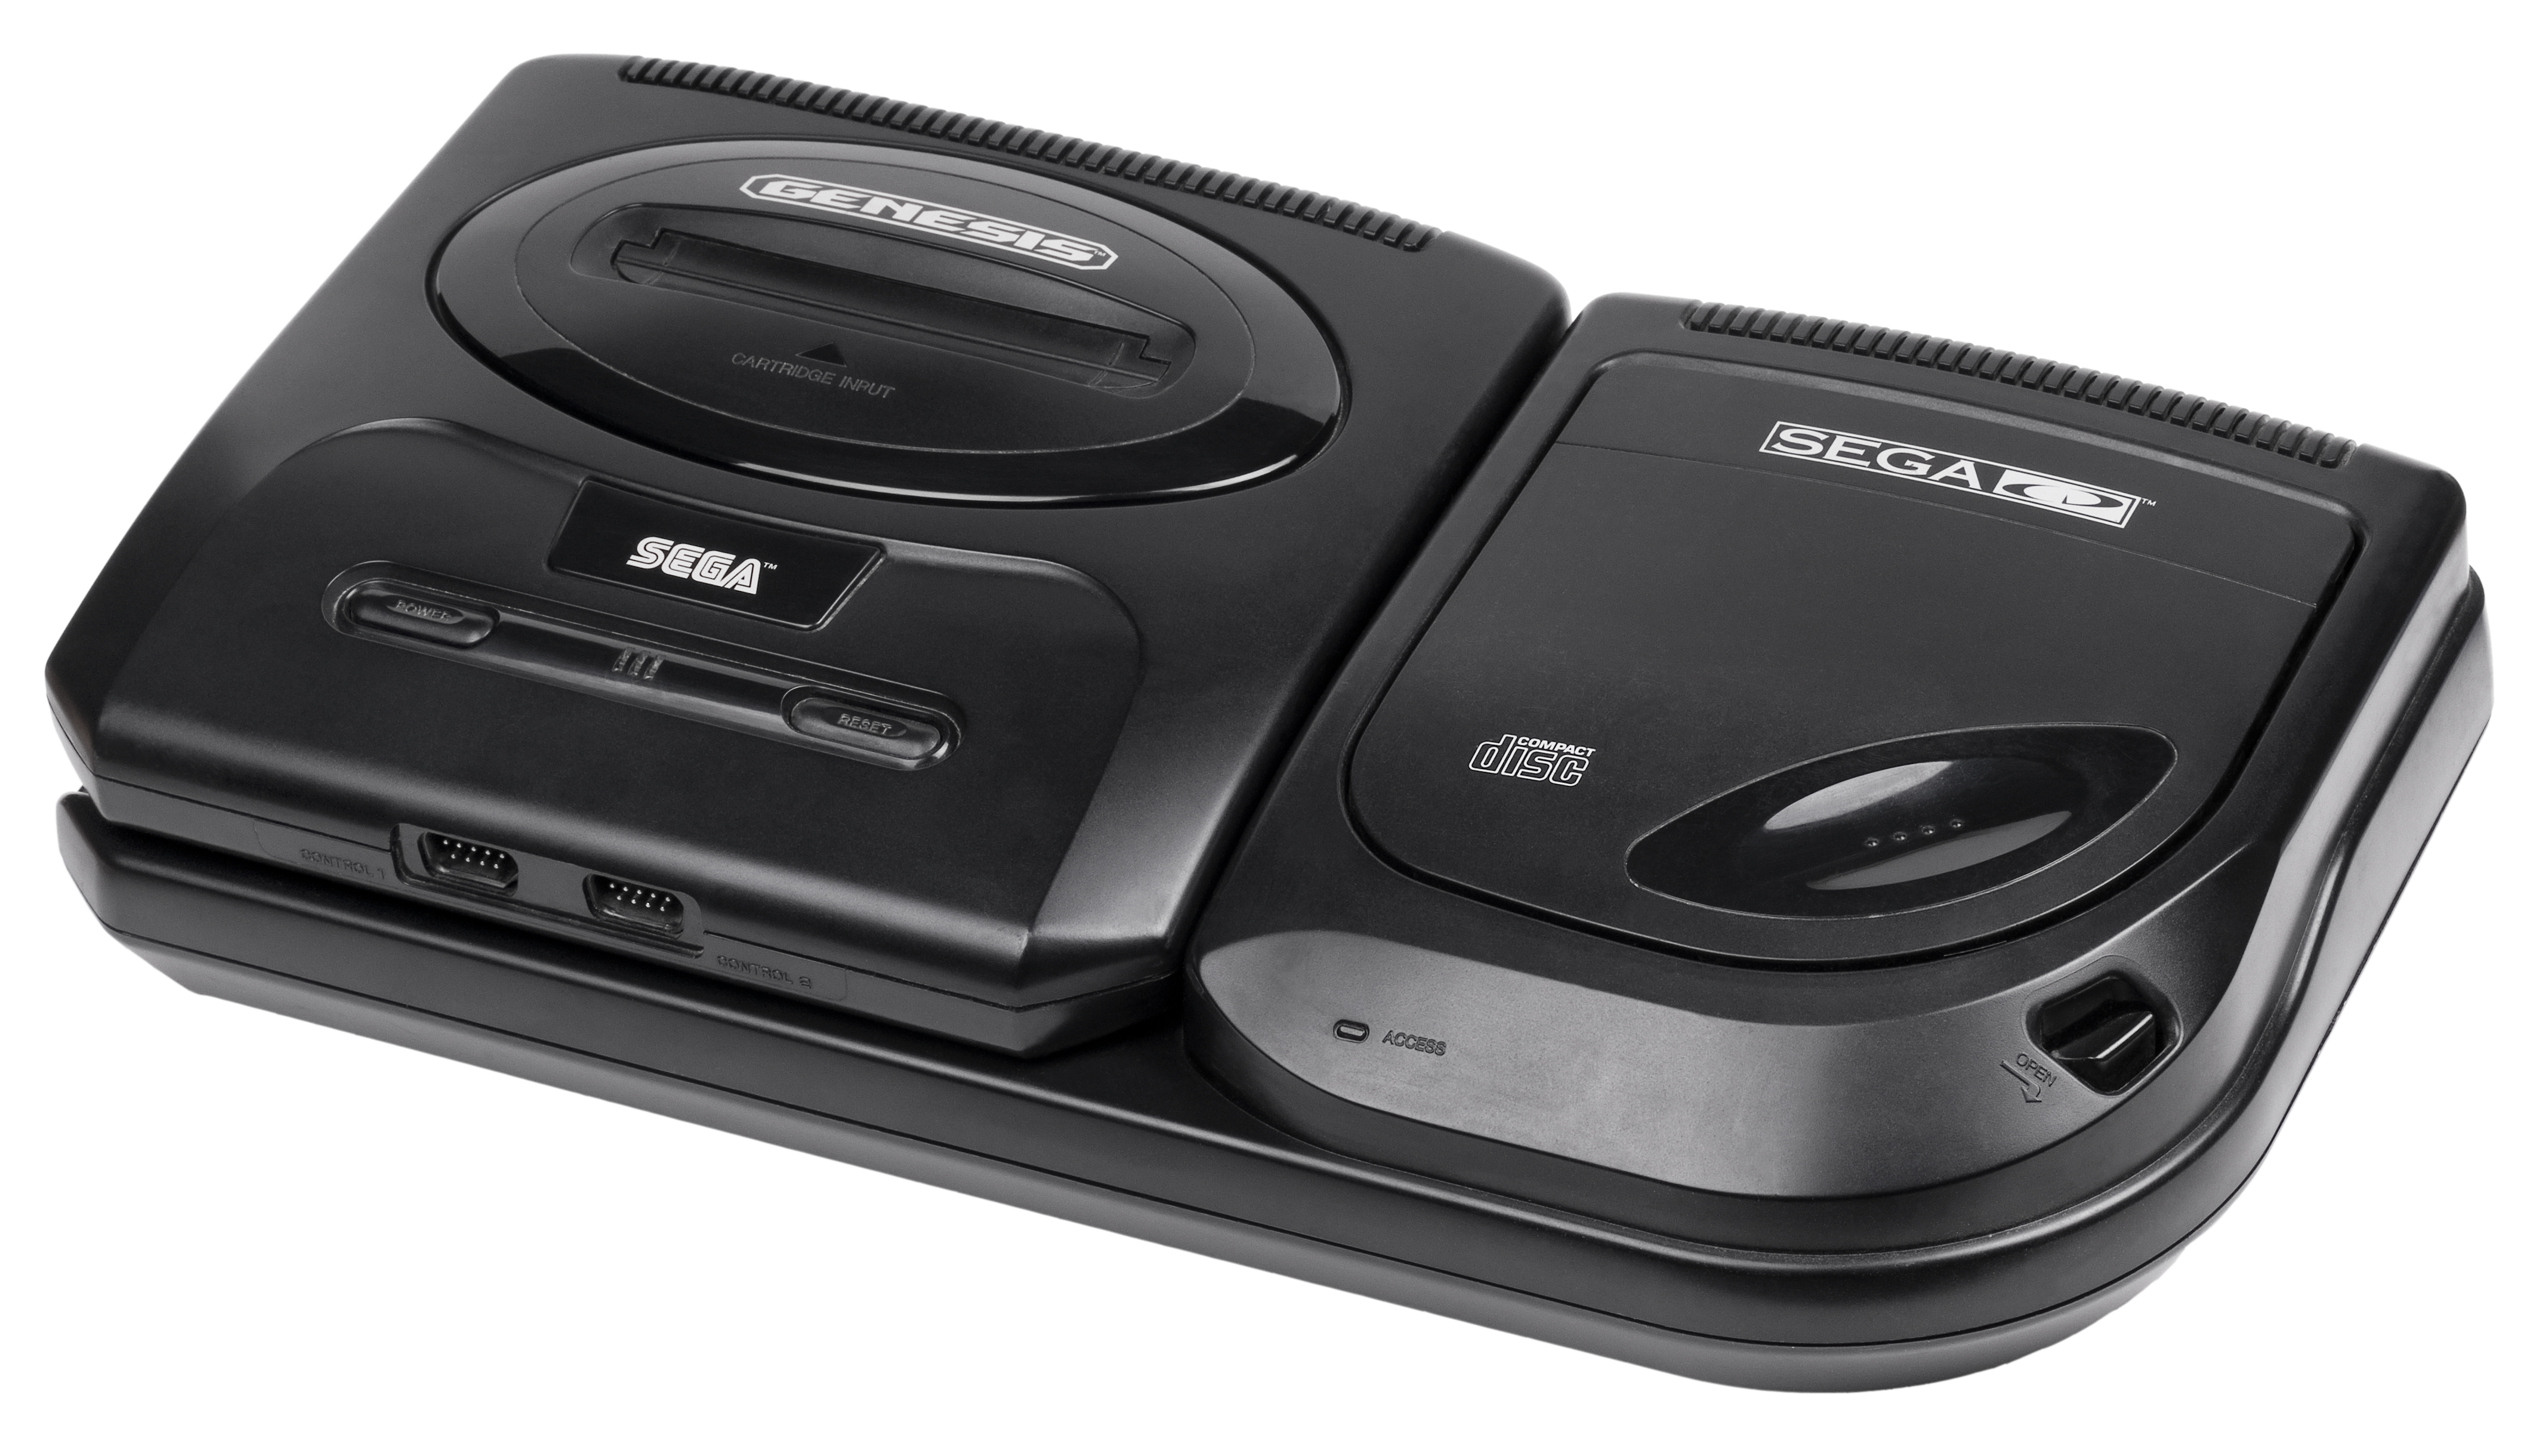 sega-cd-model2-set.png